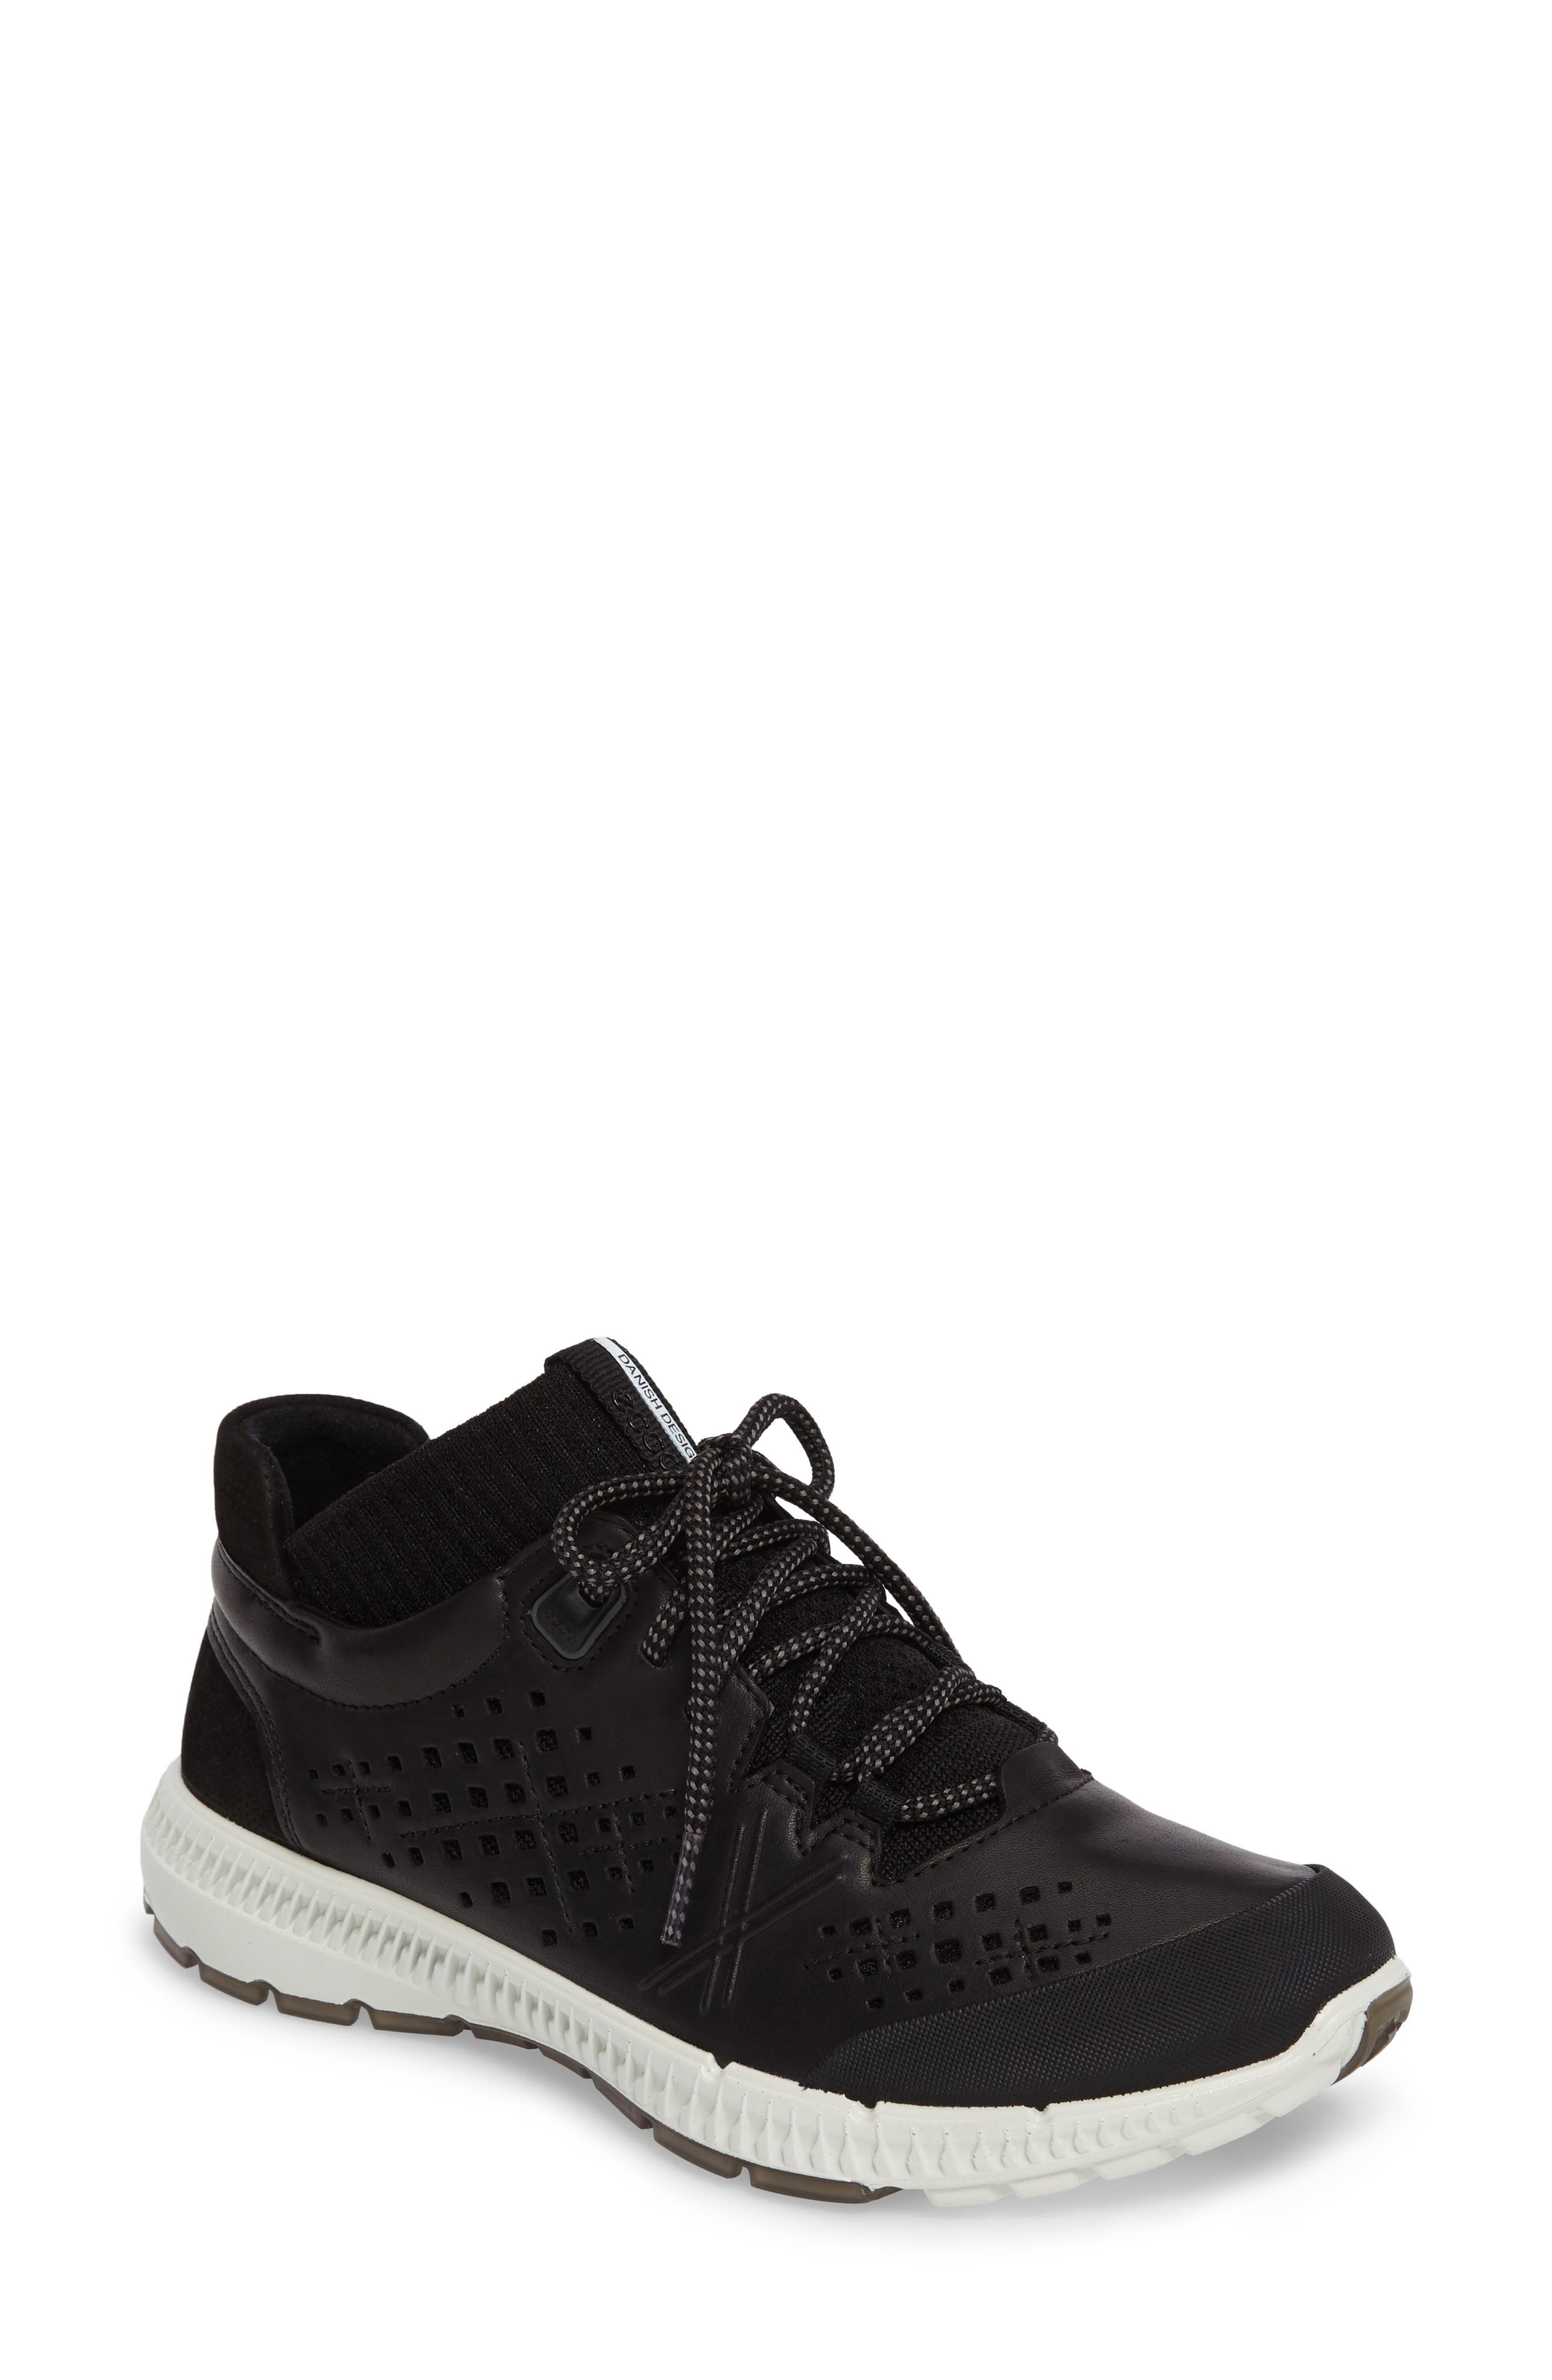 Intrinsic TR Sneaker,                             Main thumbnail 1, color,                             001